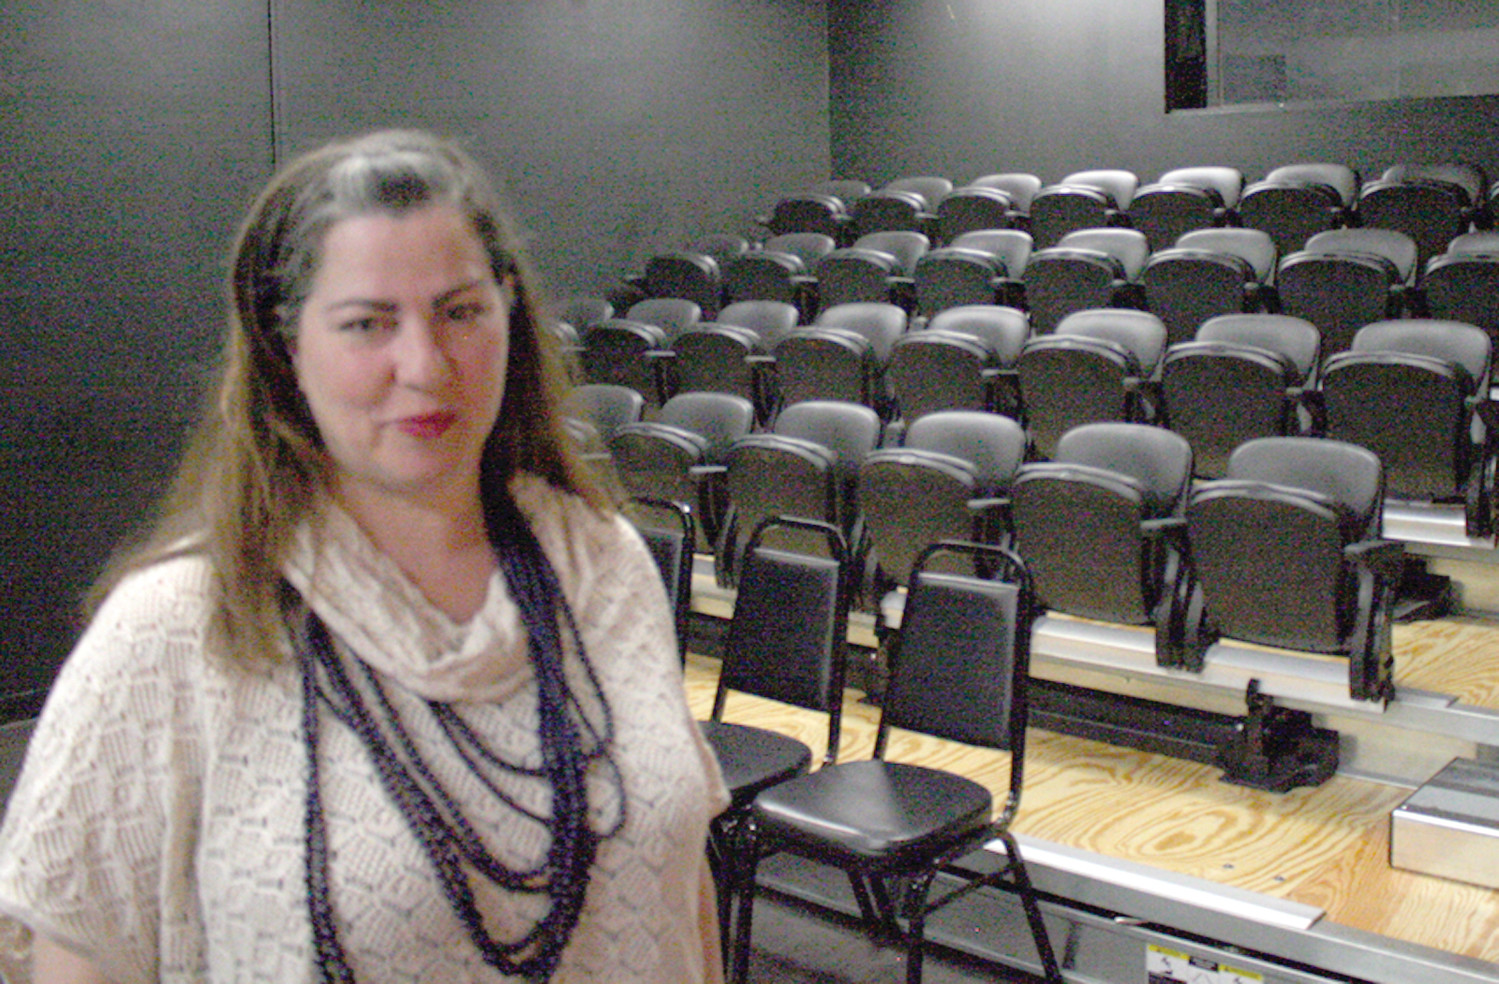 HOME MOVIE THEATER: Elaine McKenna-Yeaw shows the newly done movie theater seats, which holds 50 people and has a projector/screen as well as open floor space for theatre productions.